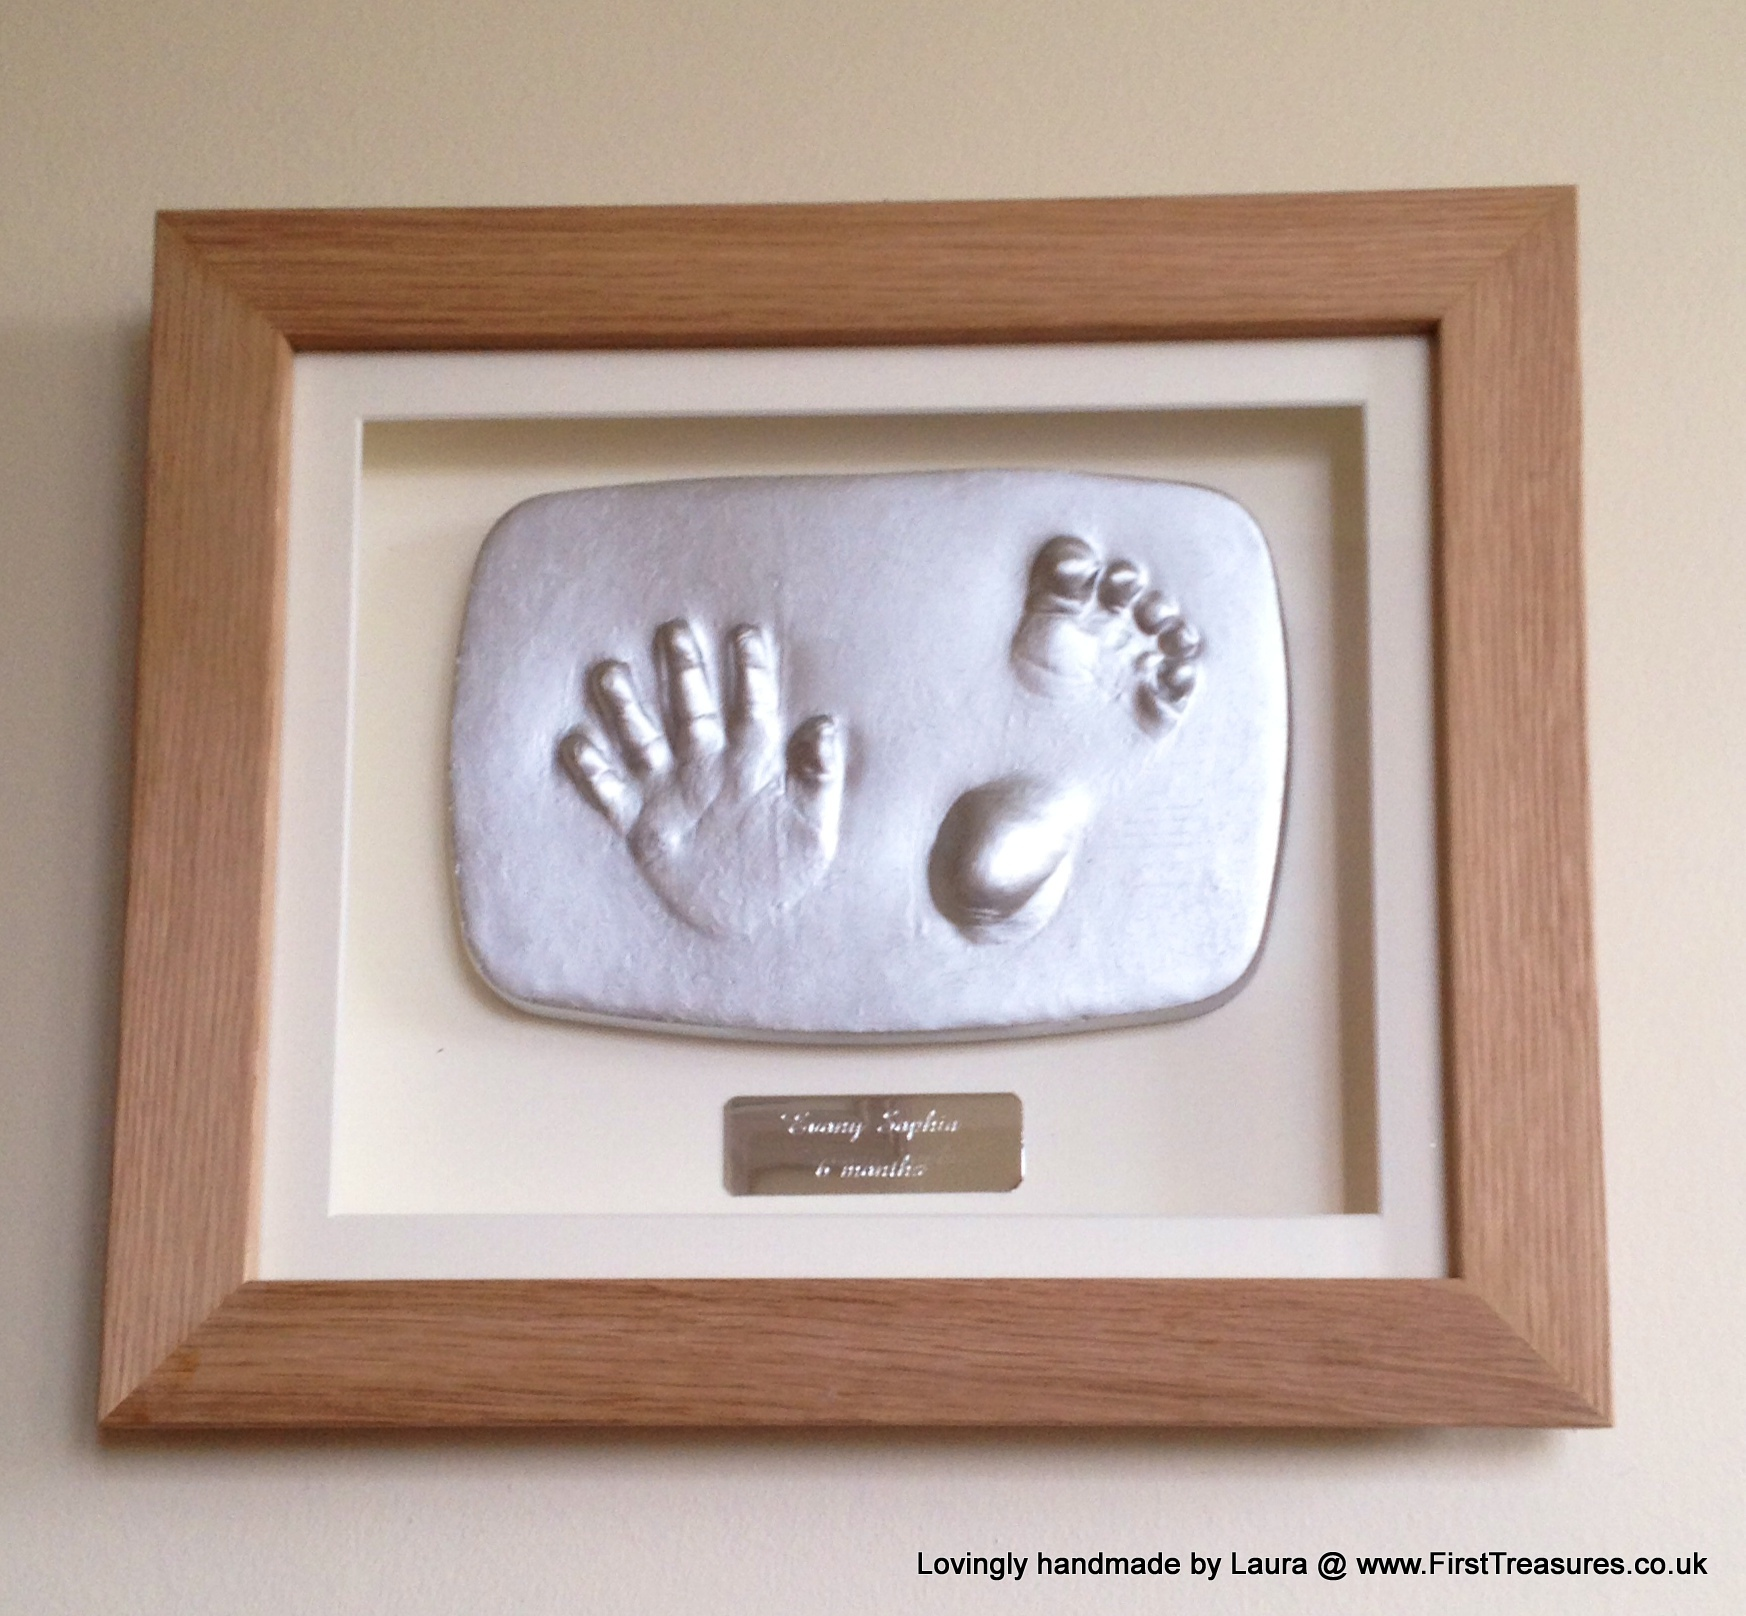 Framed hand and foot outprint